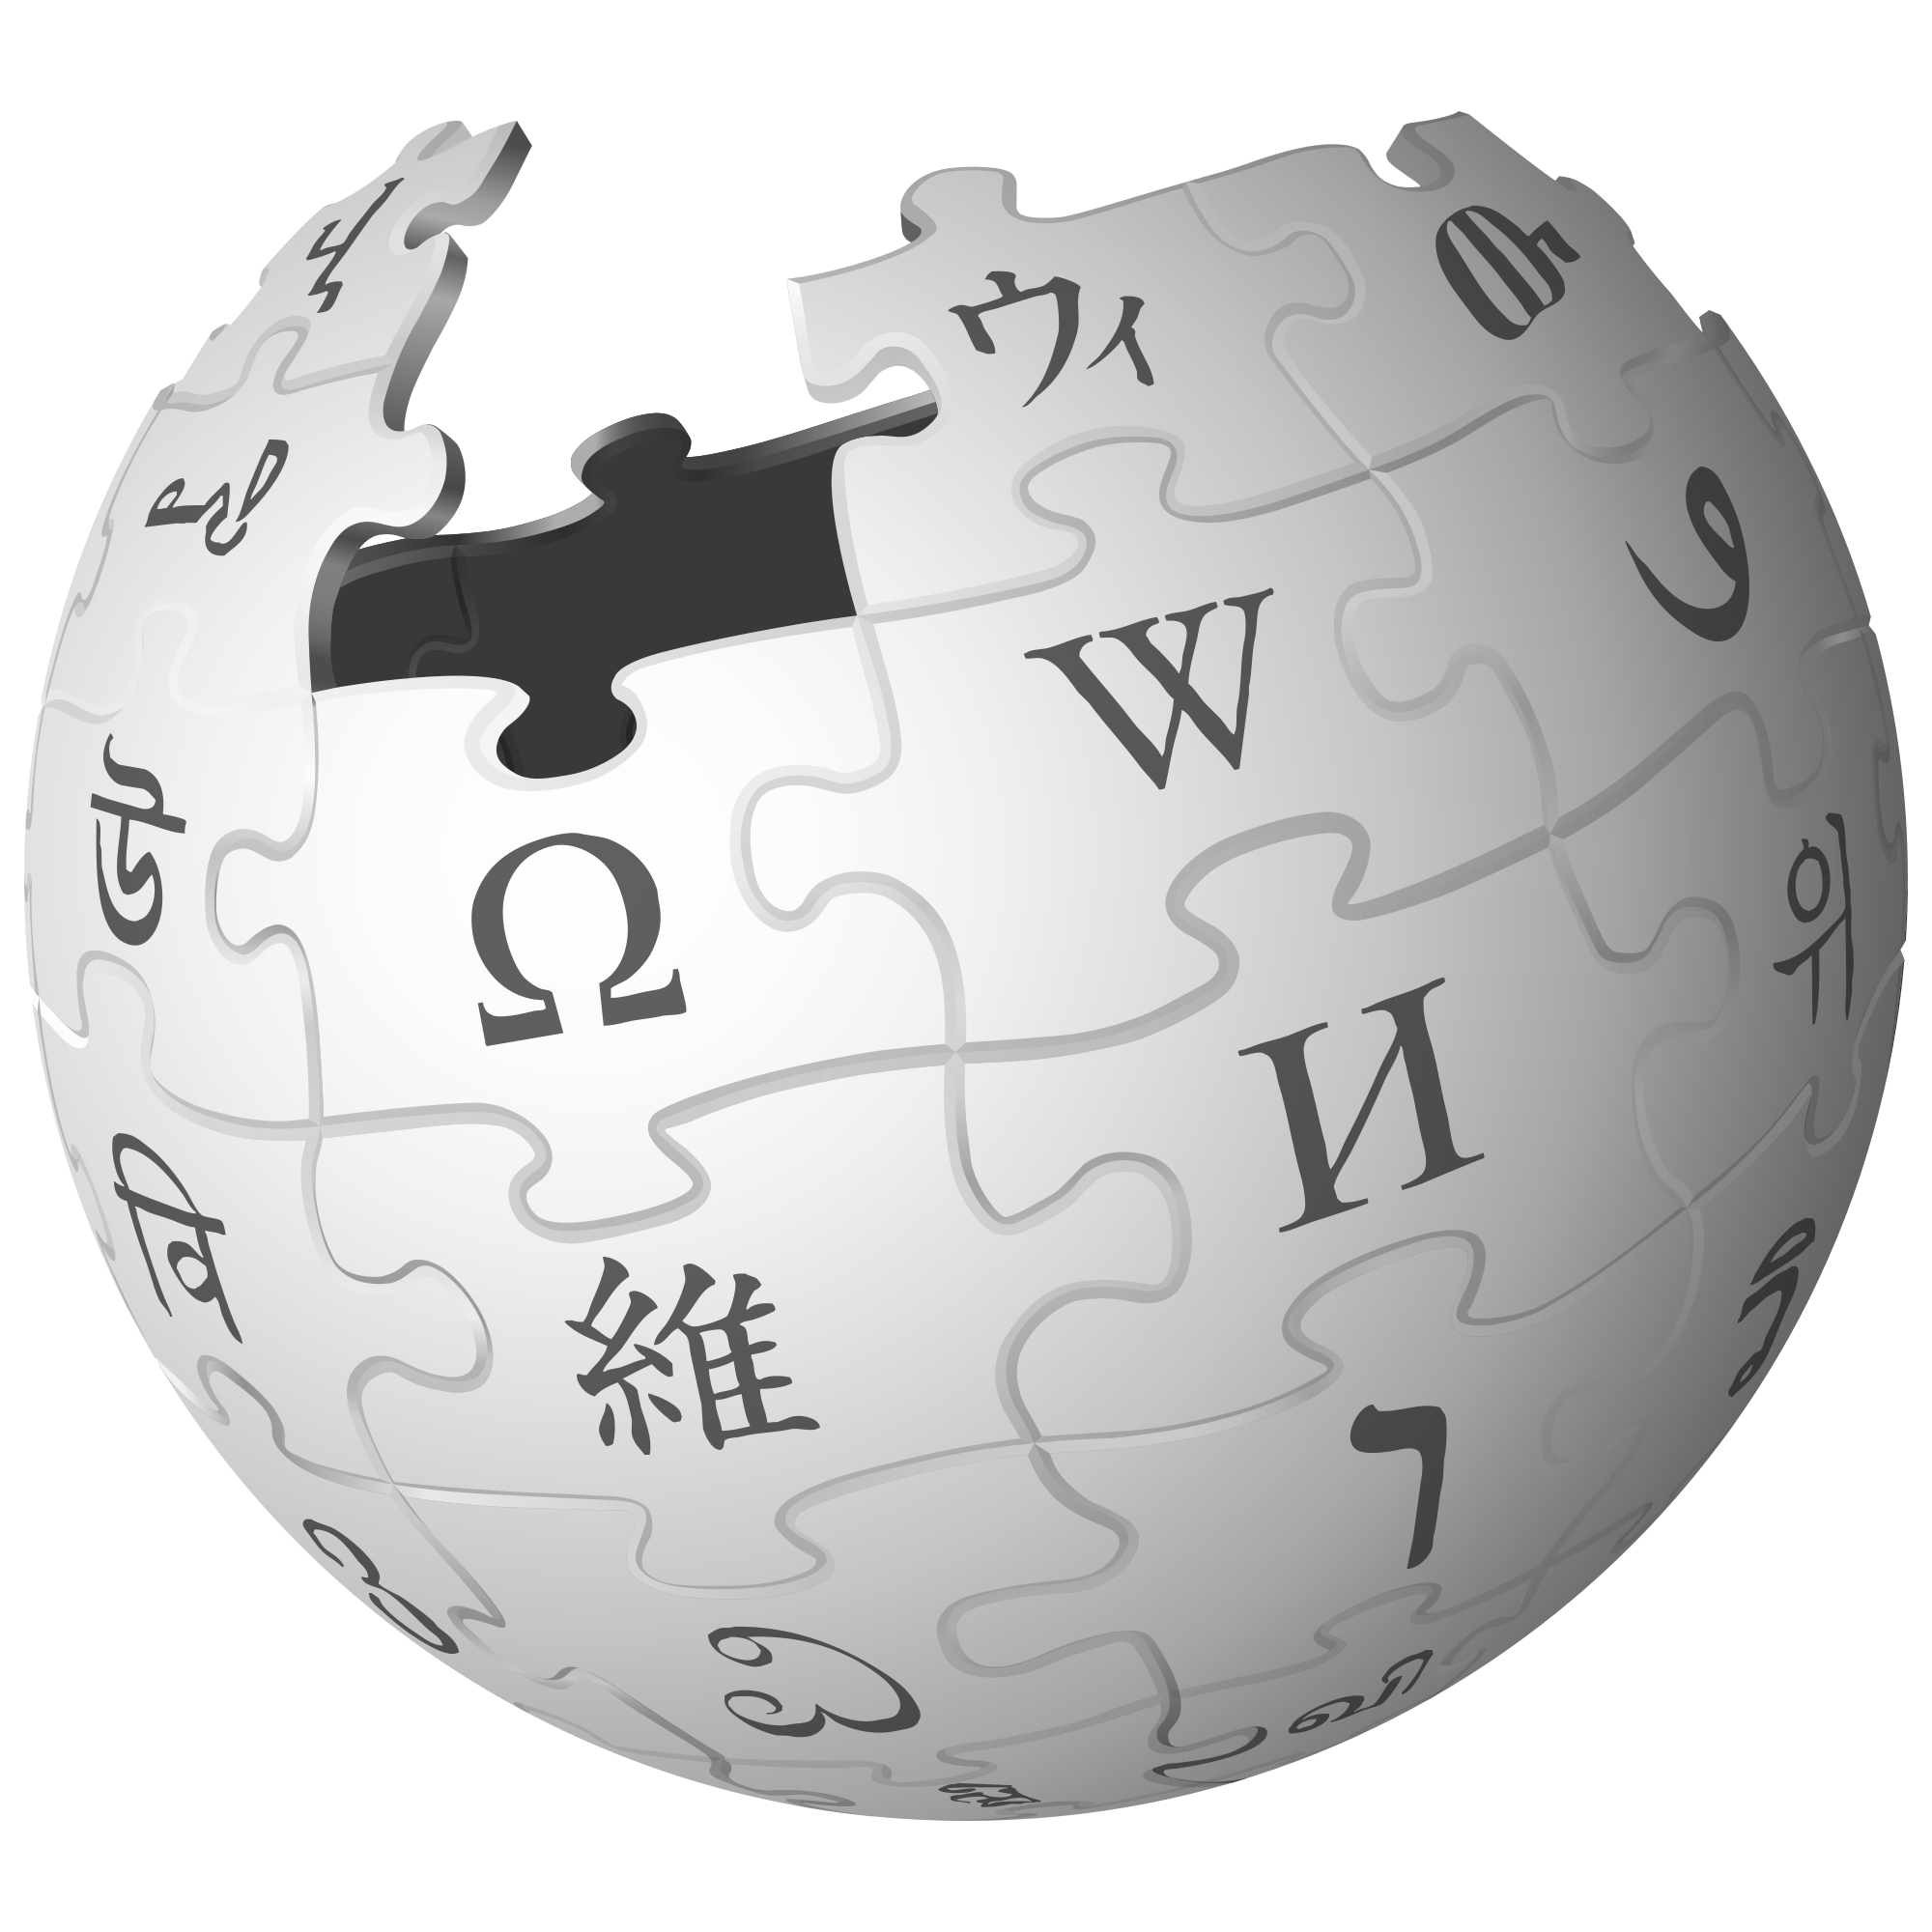 Wikipedia PNG images free download.